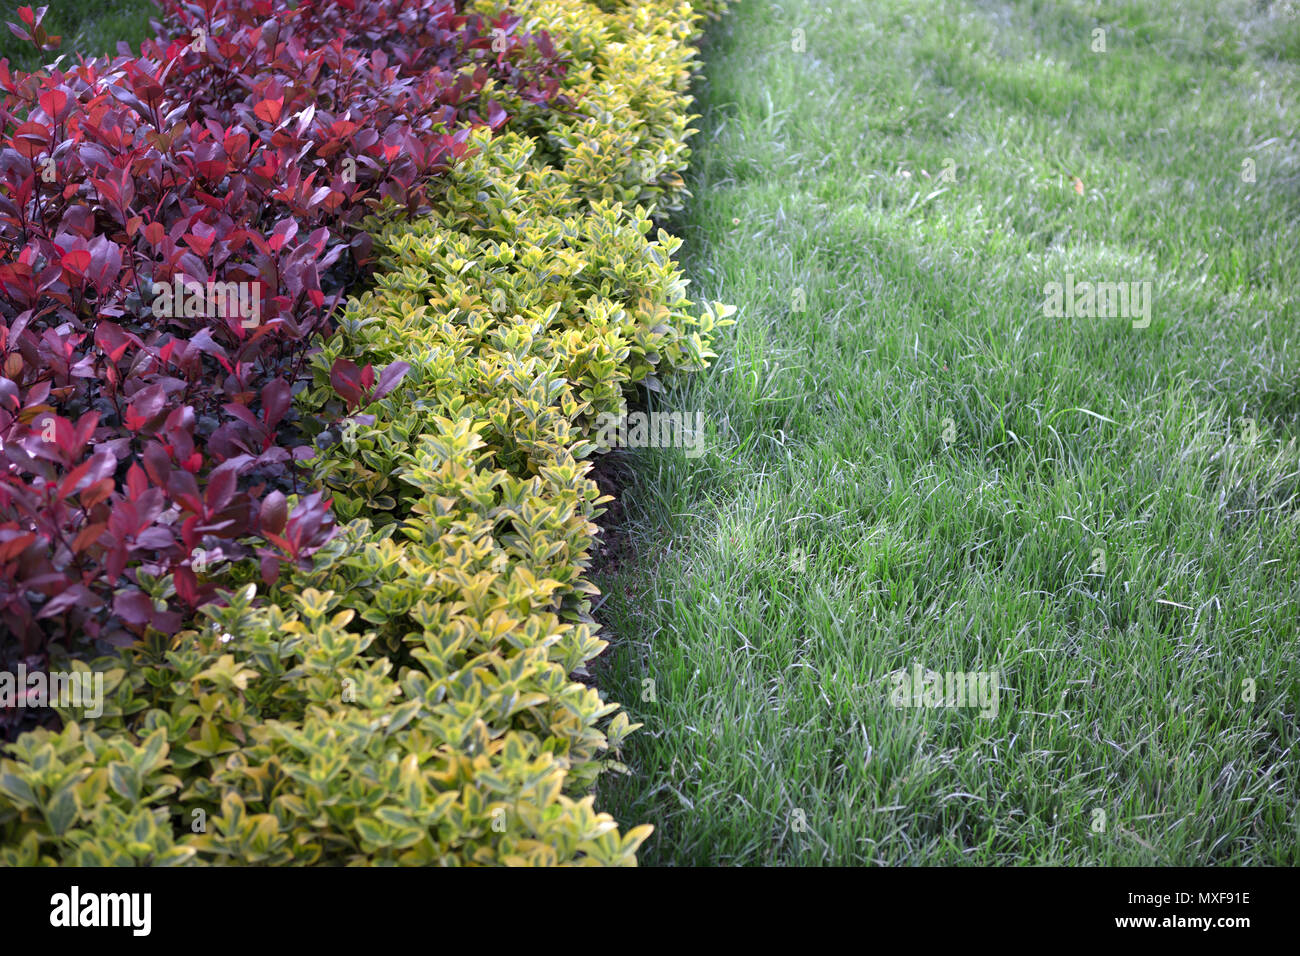 An ornamental garden shrub at lawn angle ; The bright golden yellow and red  leaves  contrasting with the manicured lawn - Stock Image